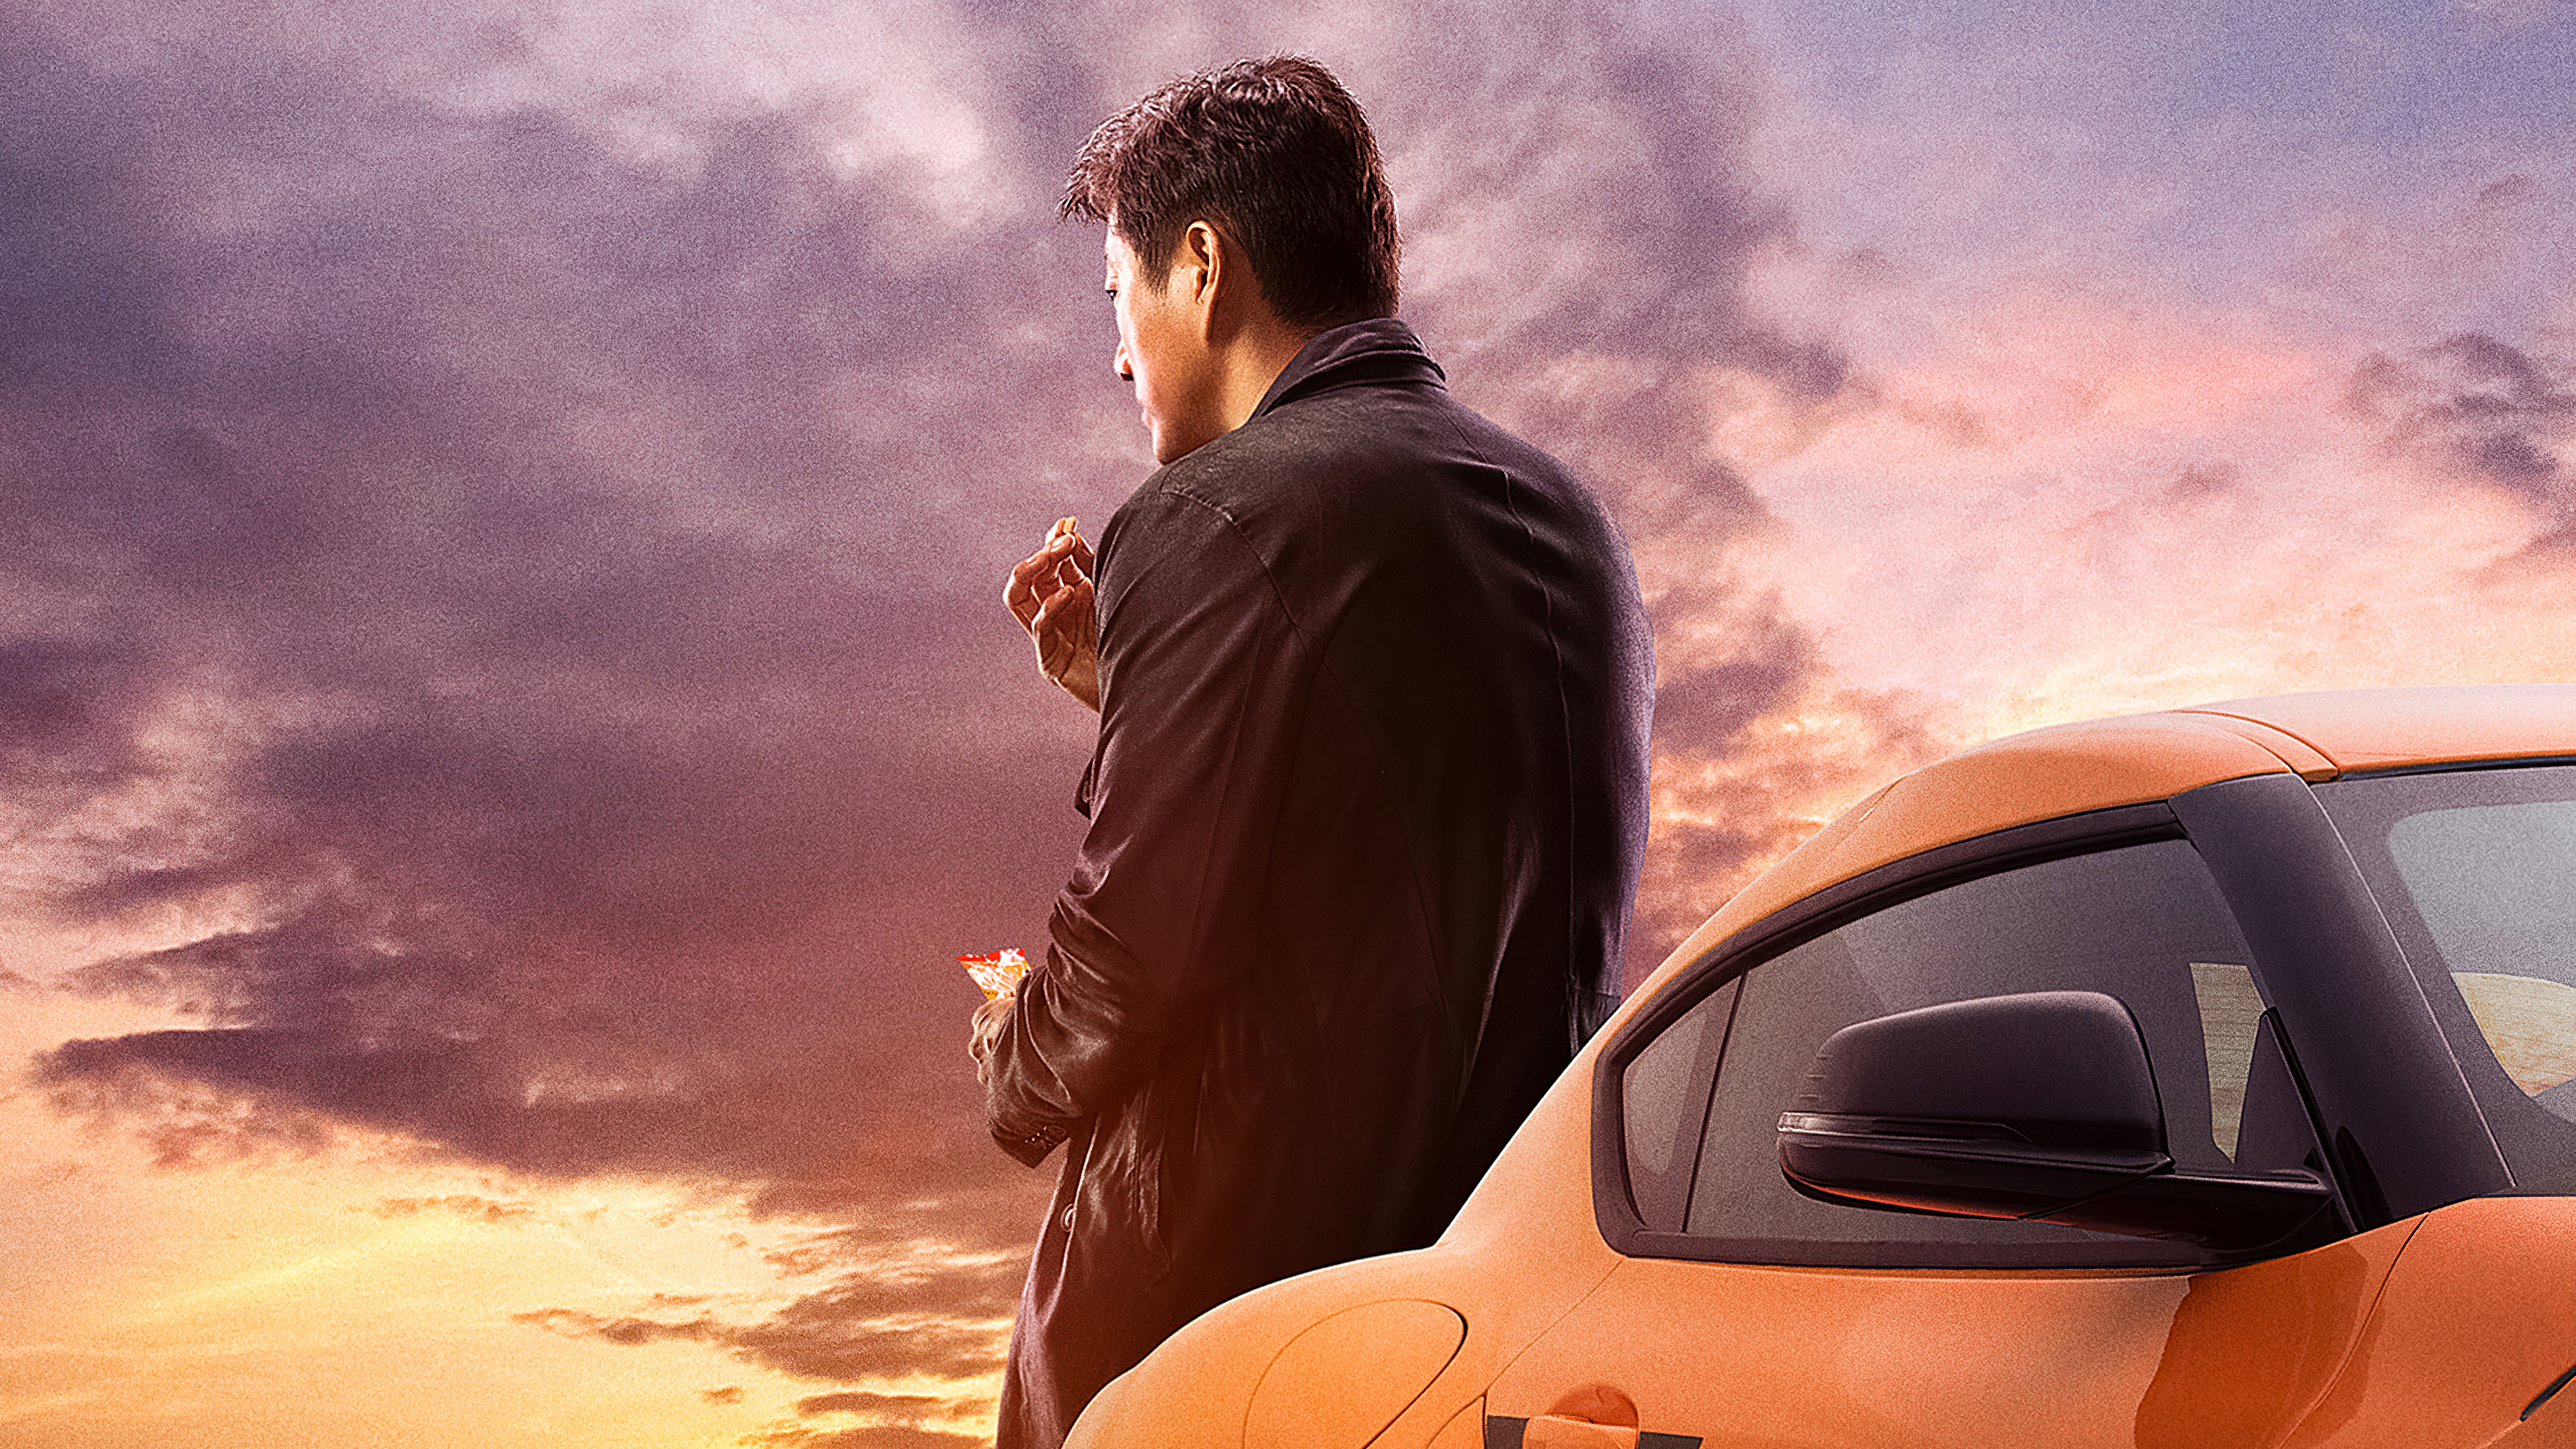 Han In Fast And Furious 9 2020 Movie Hd Movies 4k Wallpapers